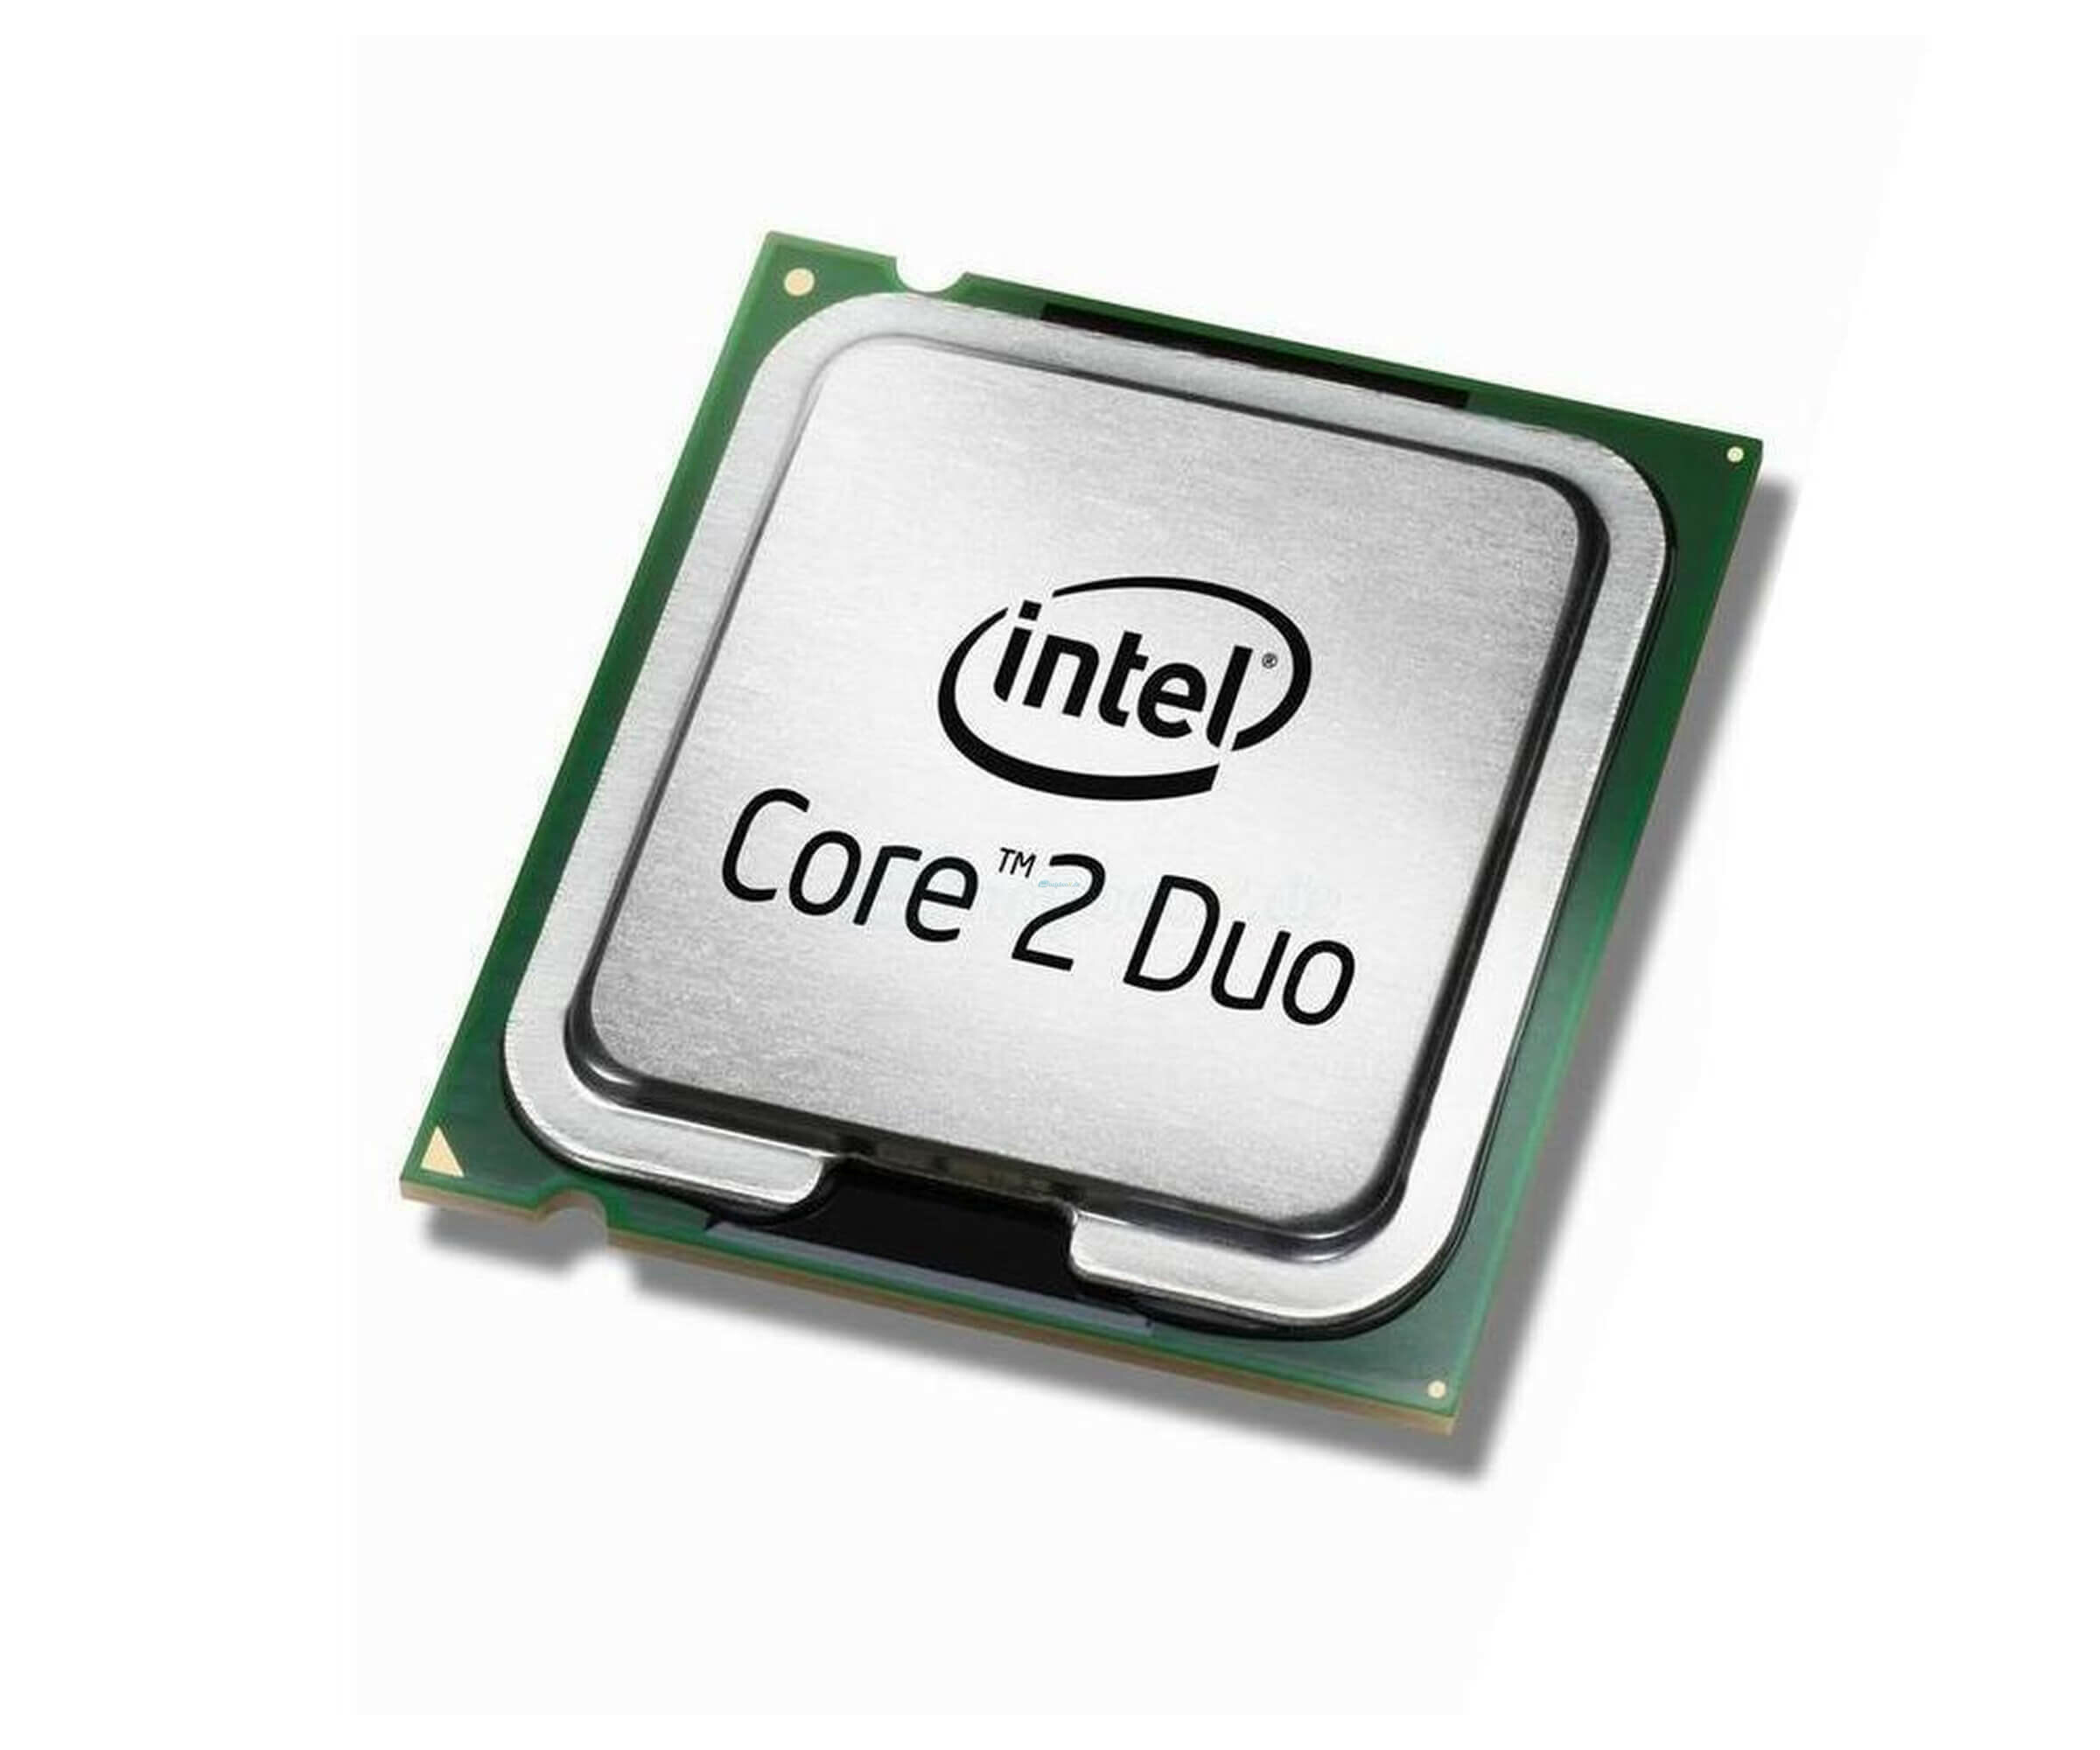 Intel Core 2 Duo T2370 - 1.73 GHz Prozessor - PPGA478 - 1 MB Cache - 2-Core